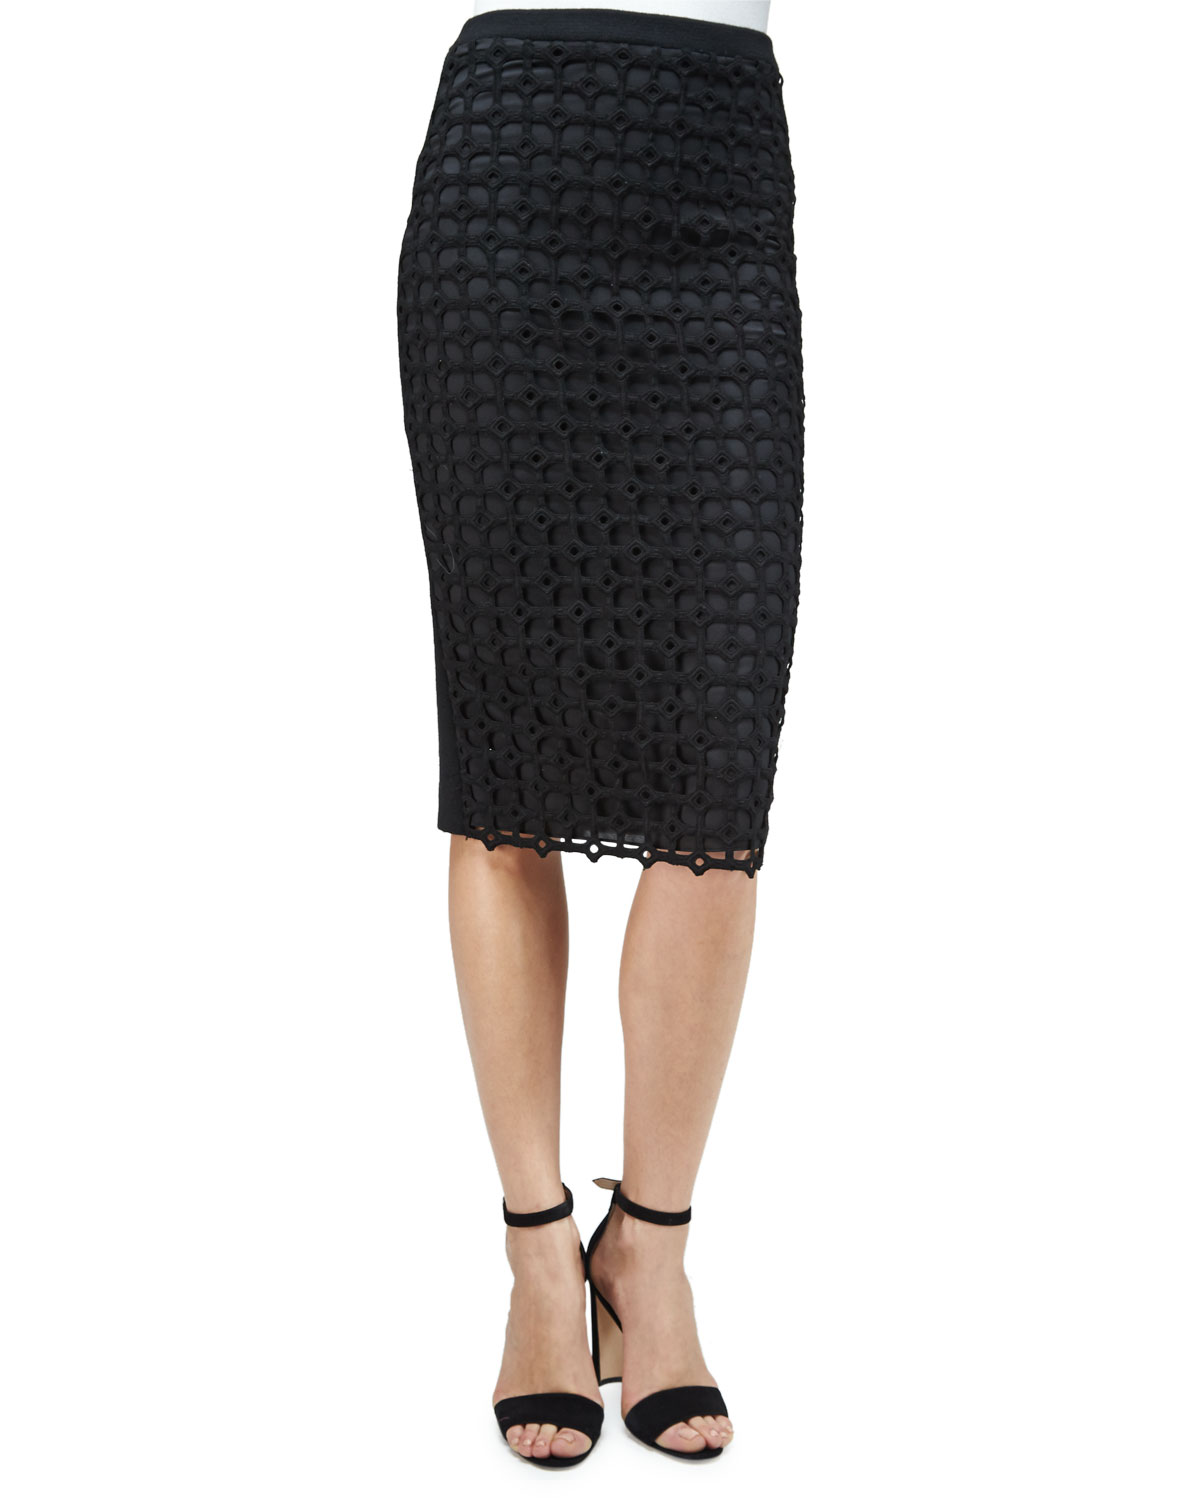 Macrame-Front Pencil Skirt, Black